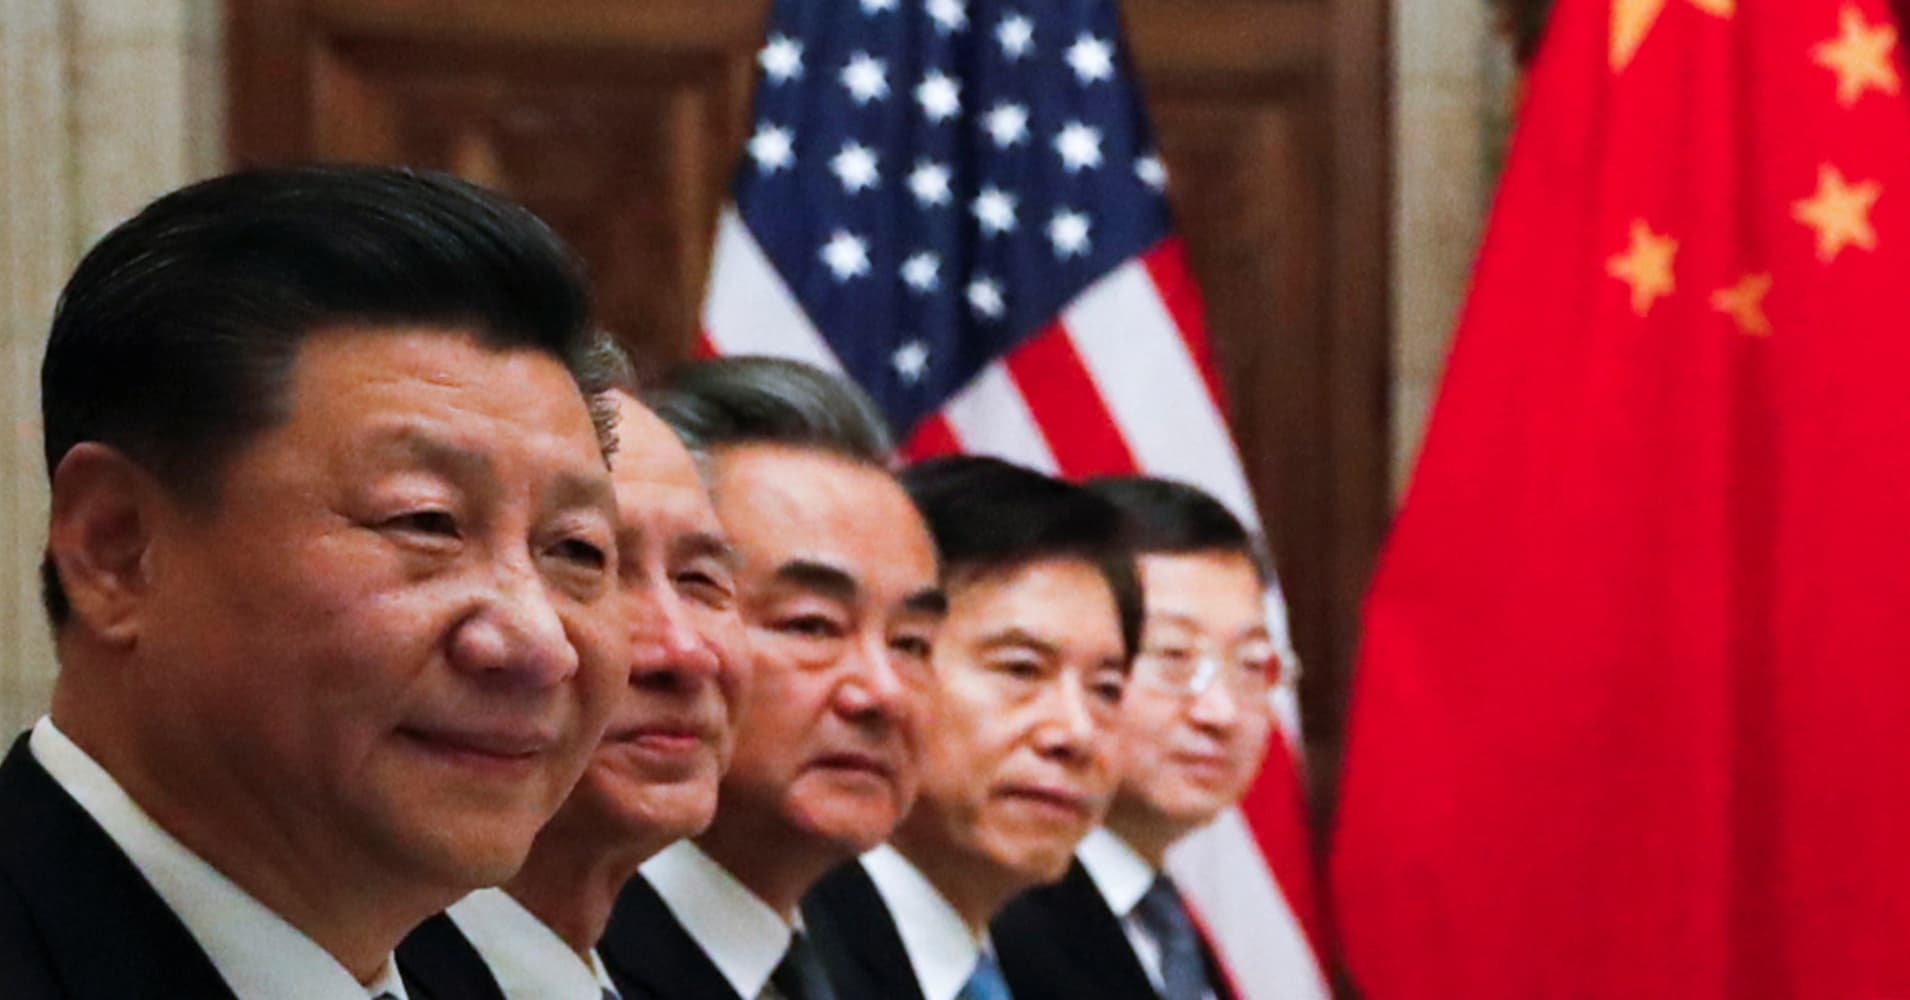 There may be more at stake than just trade concessions in the US-China tariff battle